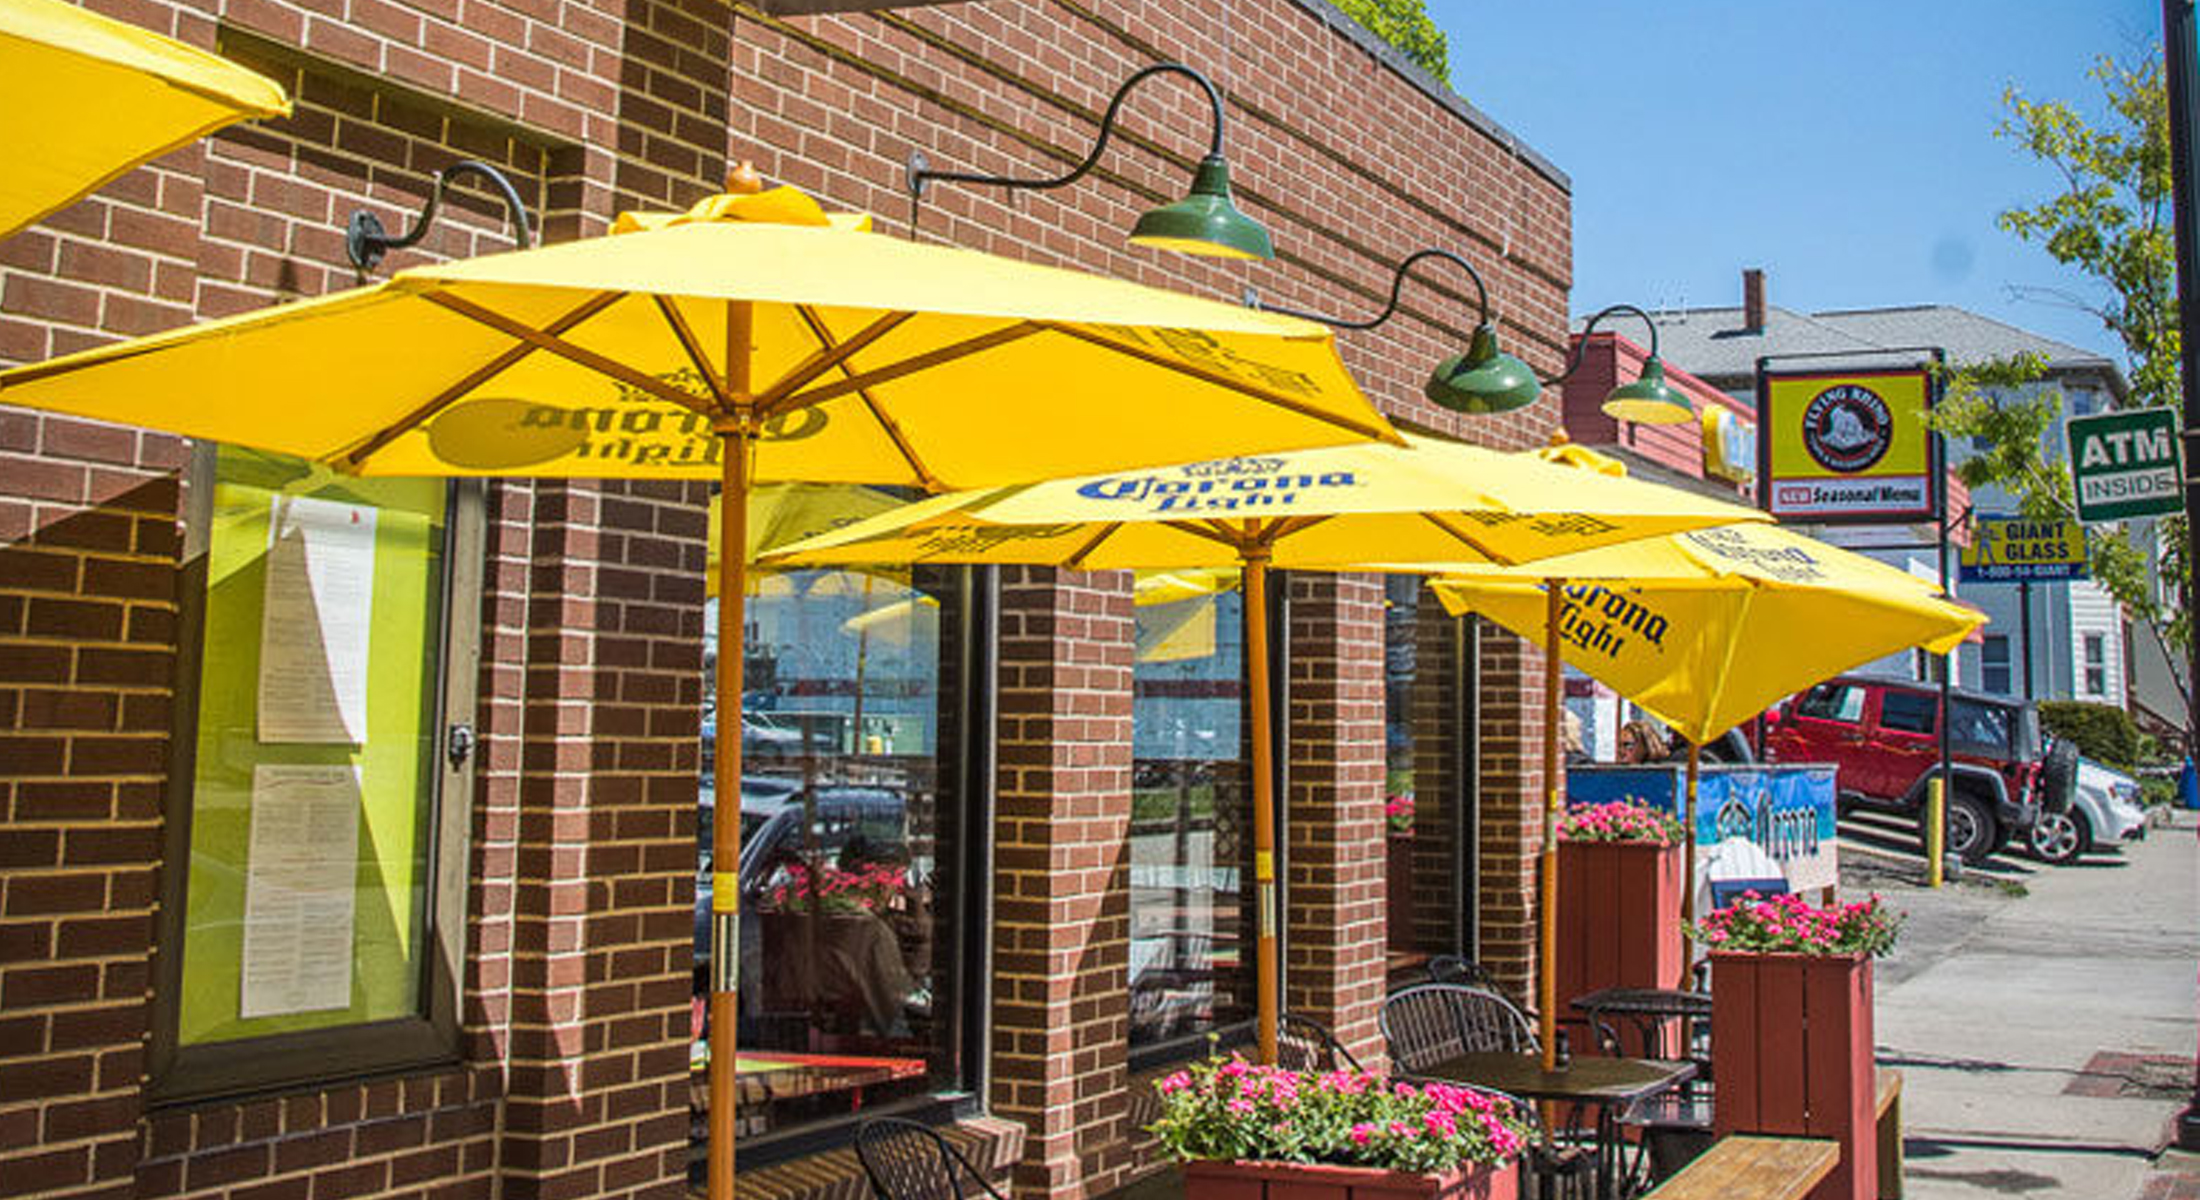 Custom Patio Umbrellas & Curbside Displays: Prepare For The Reopening